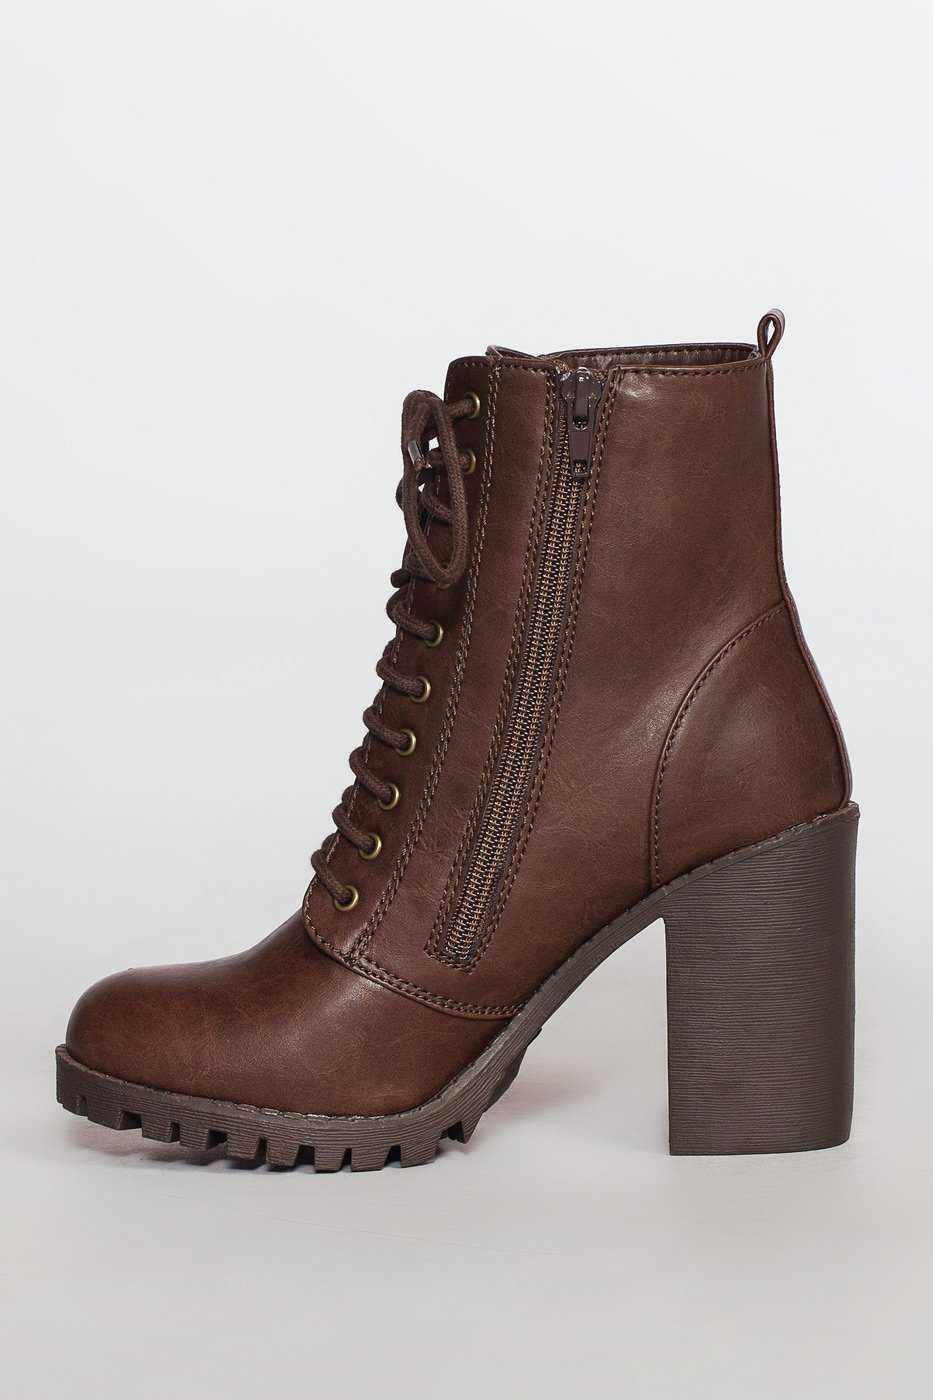 Shoes - Edge Of Life Boots - Chocolate